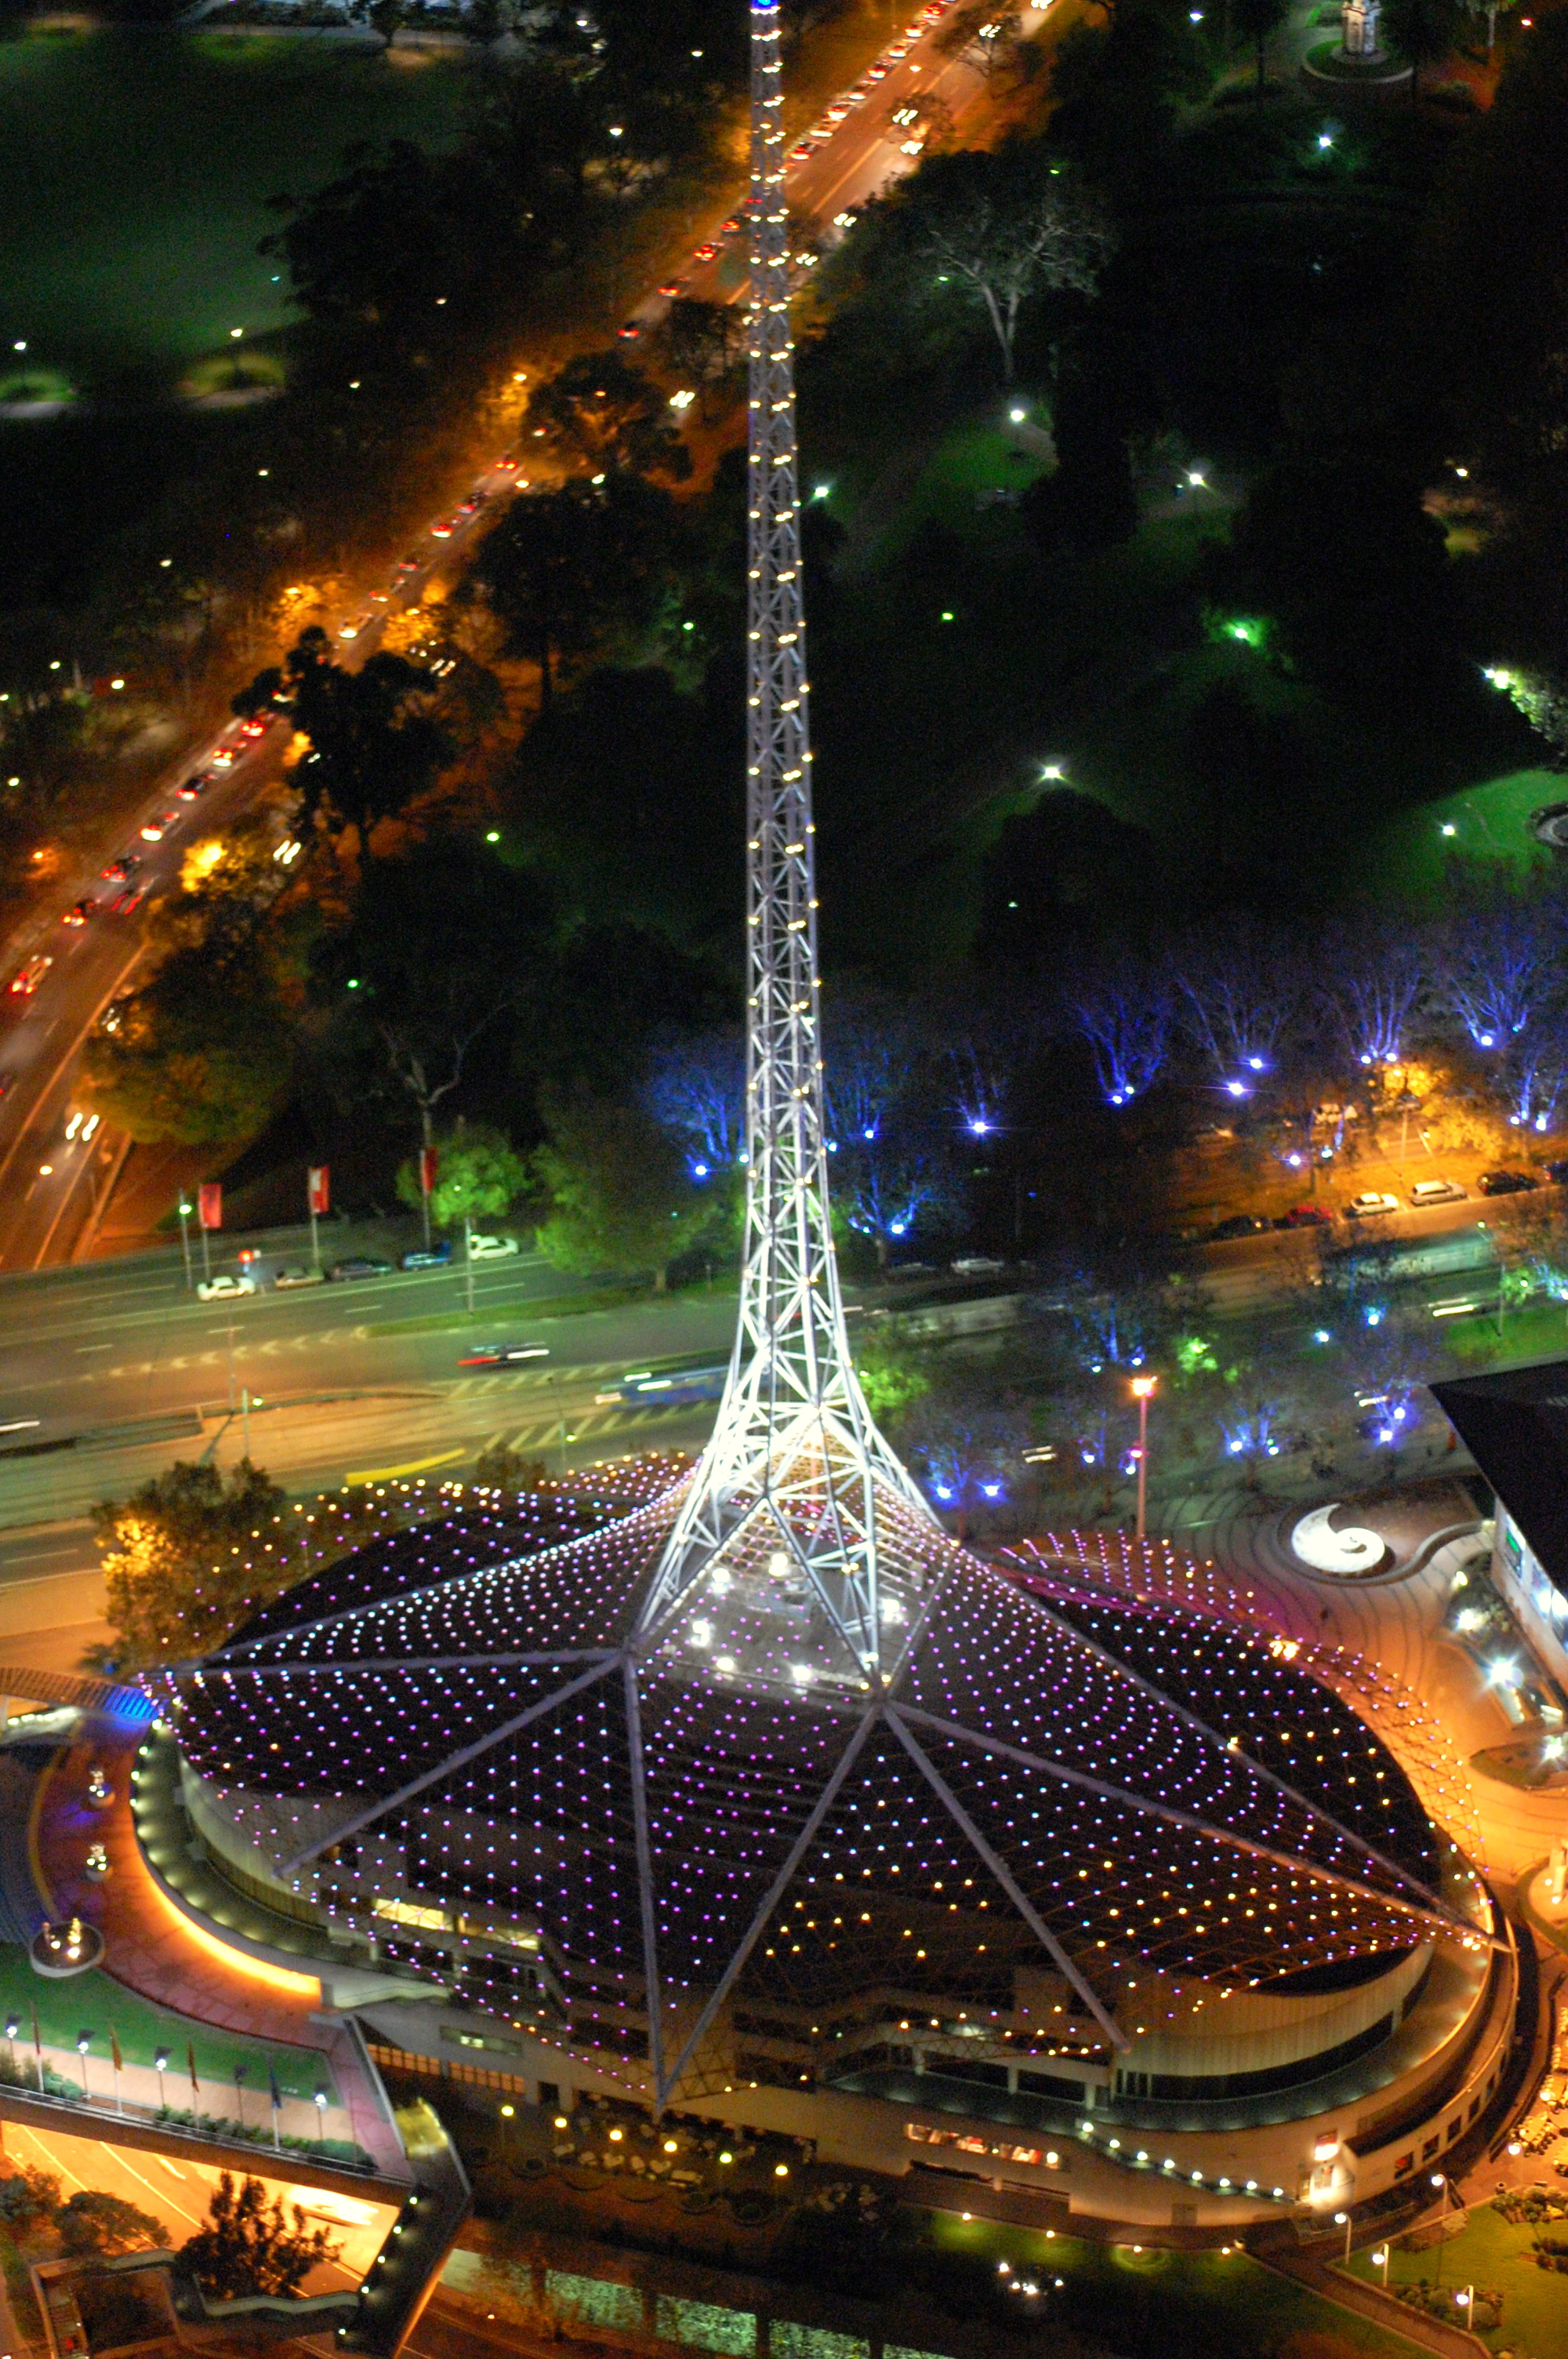 Who Designed The Eiffel Tower Arts Centre Melbourne Tower In Melbourne Thousand Wonders